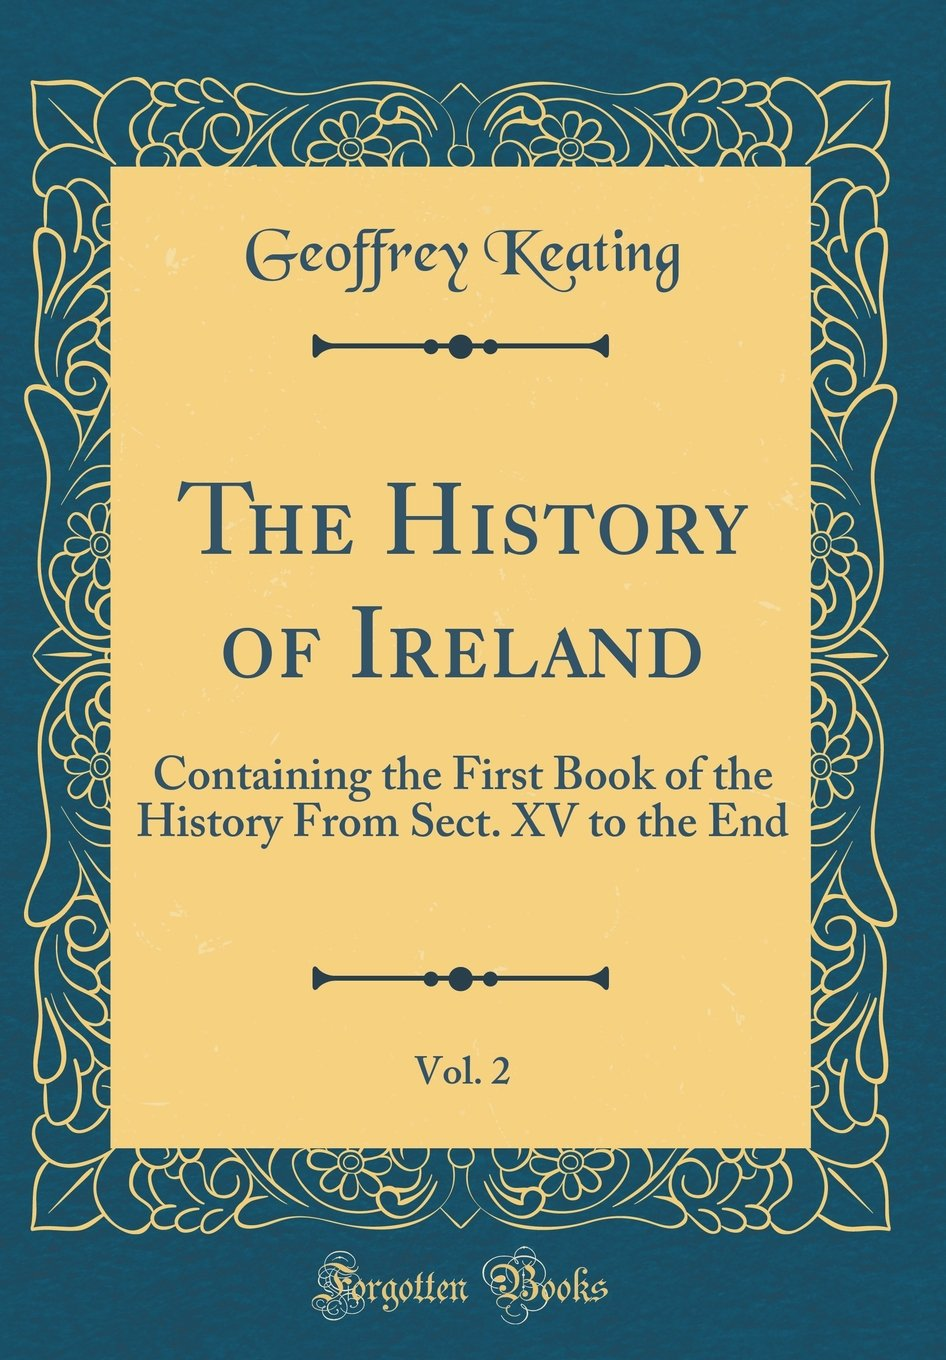 The History of Ireland, Vol. 2: Containing the First Book of the History From Sect. XV to the End (Classic Reprint) pdf